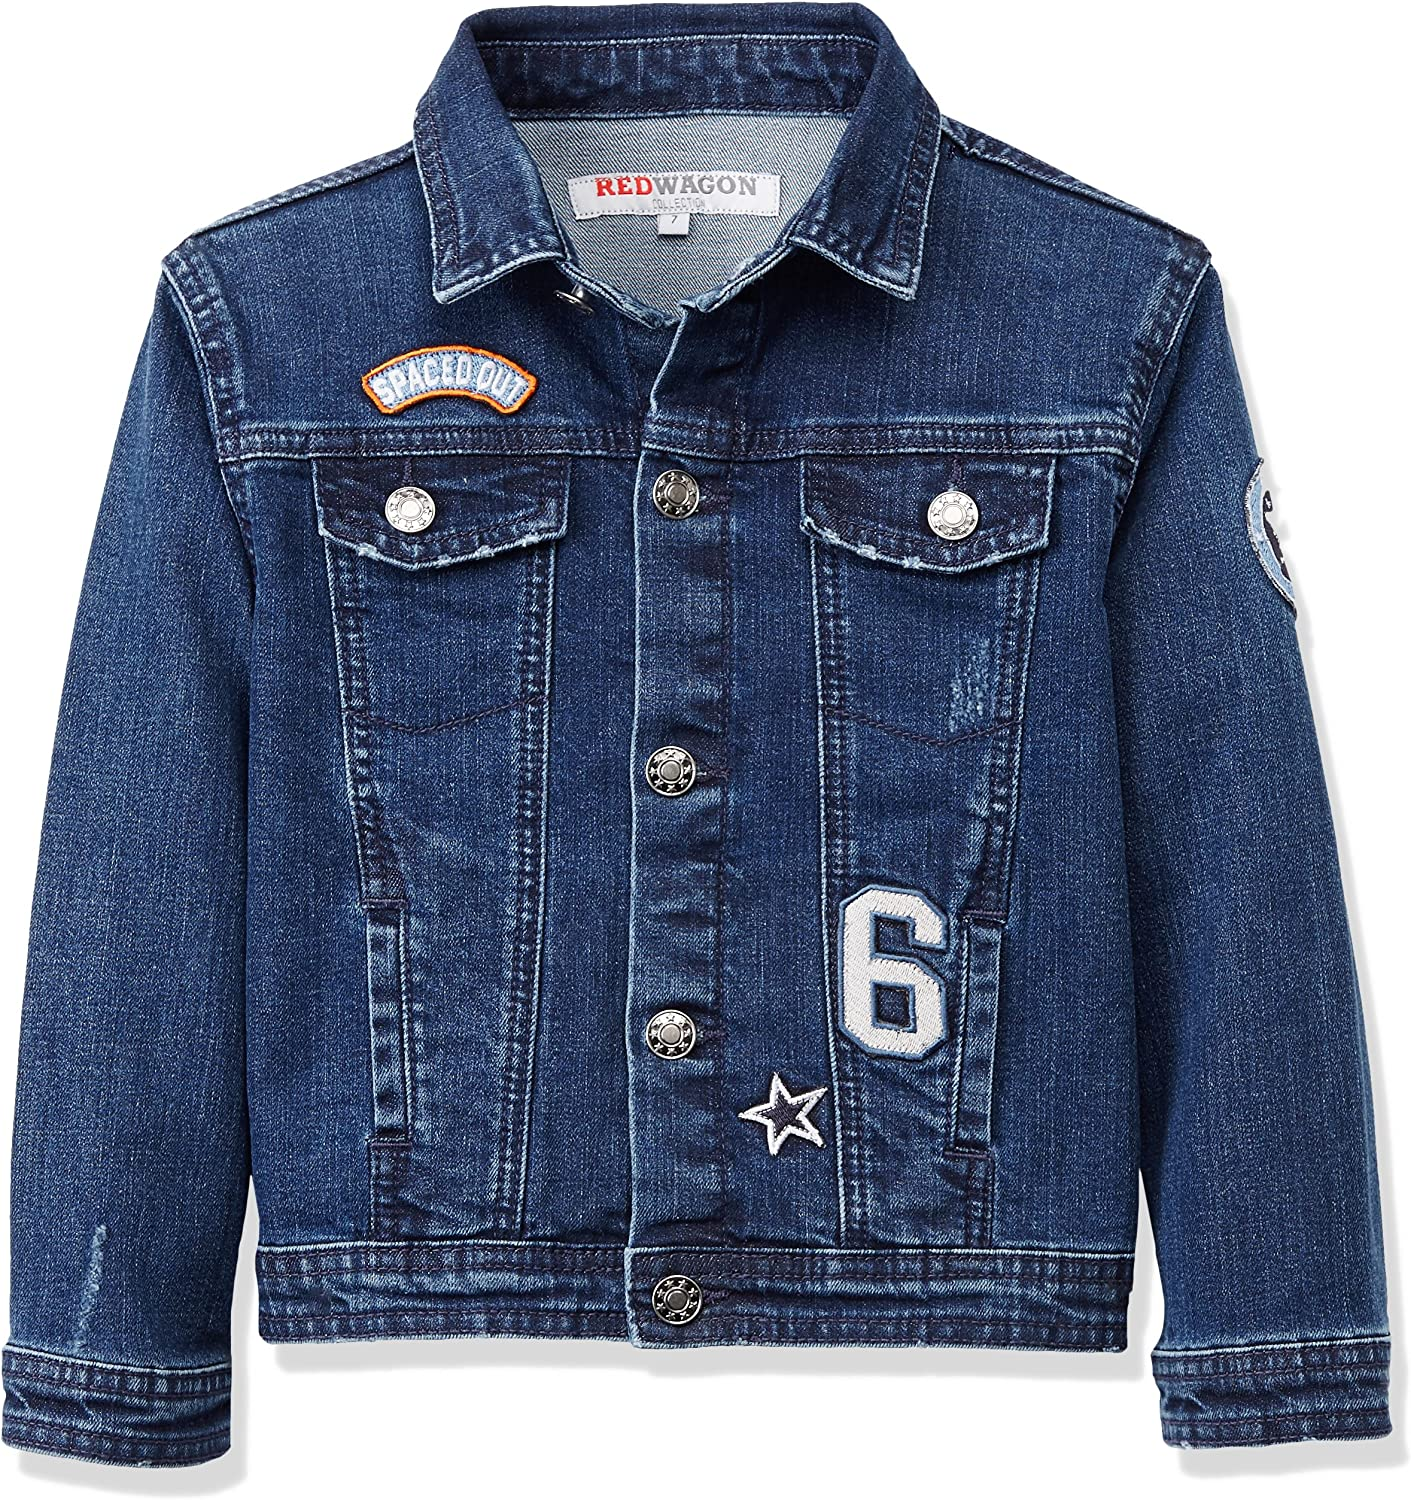 RED WAGON Boys Denim Badge Jacket Brand